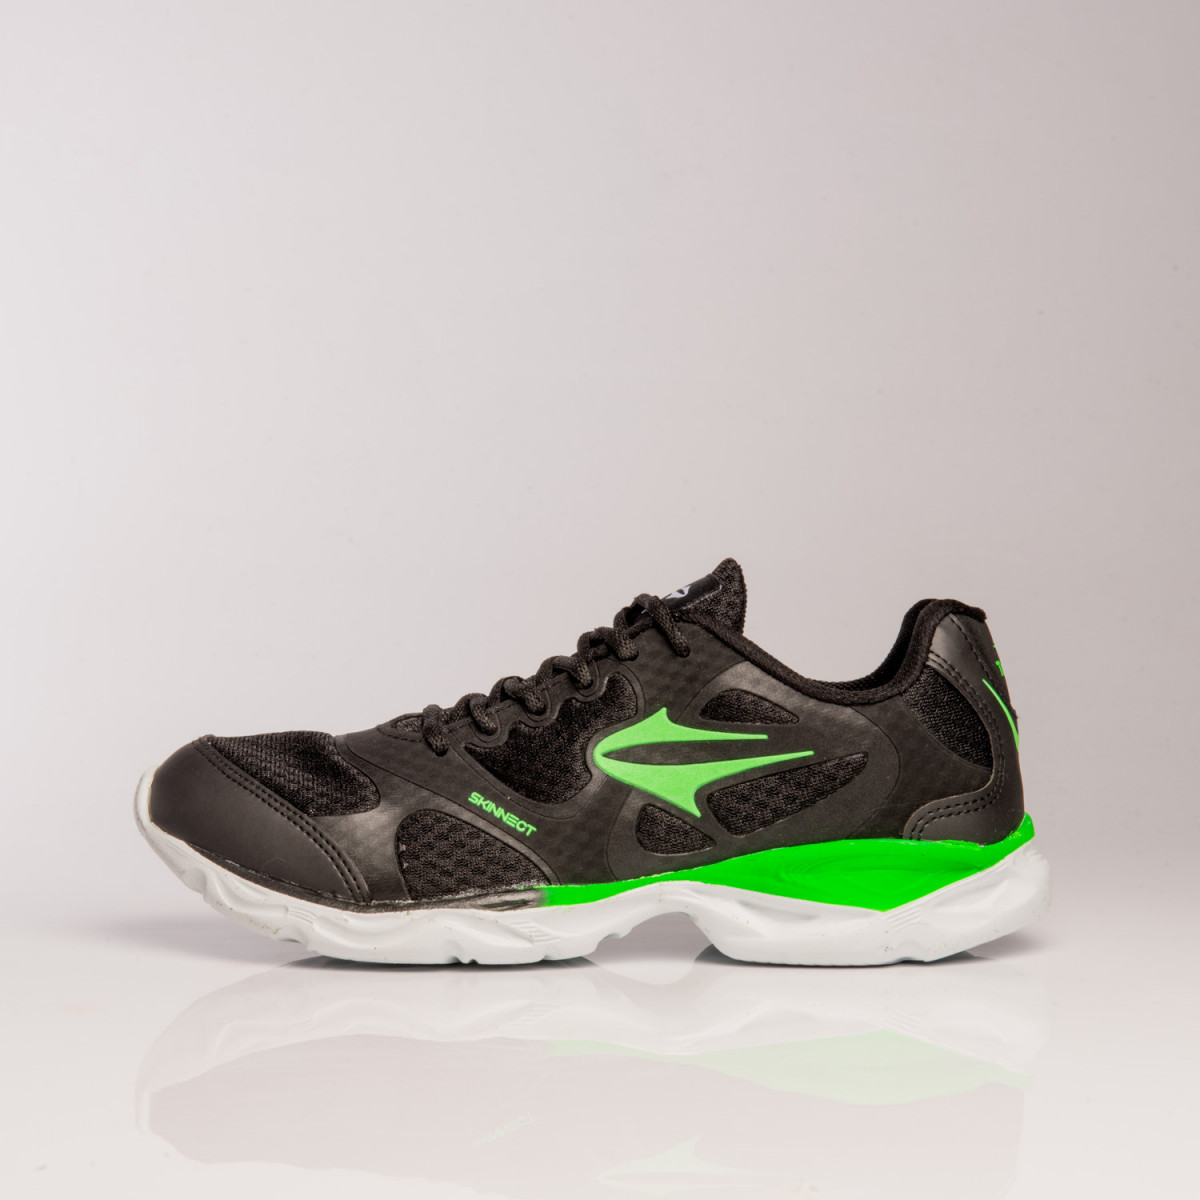 Zapatillas Topper Volt